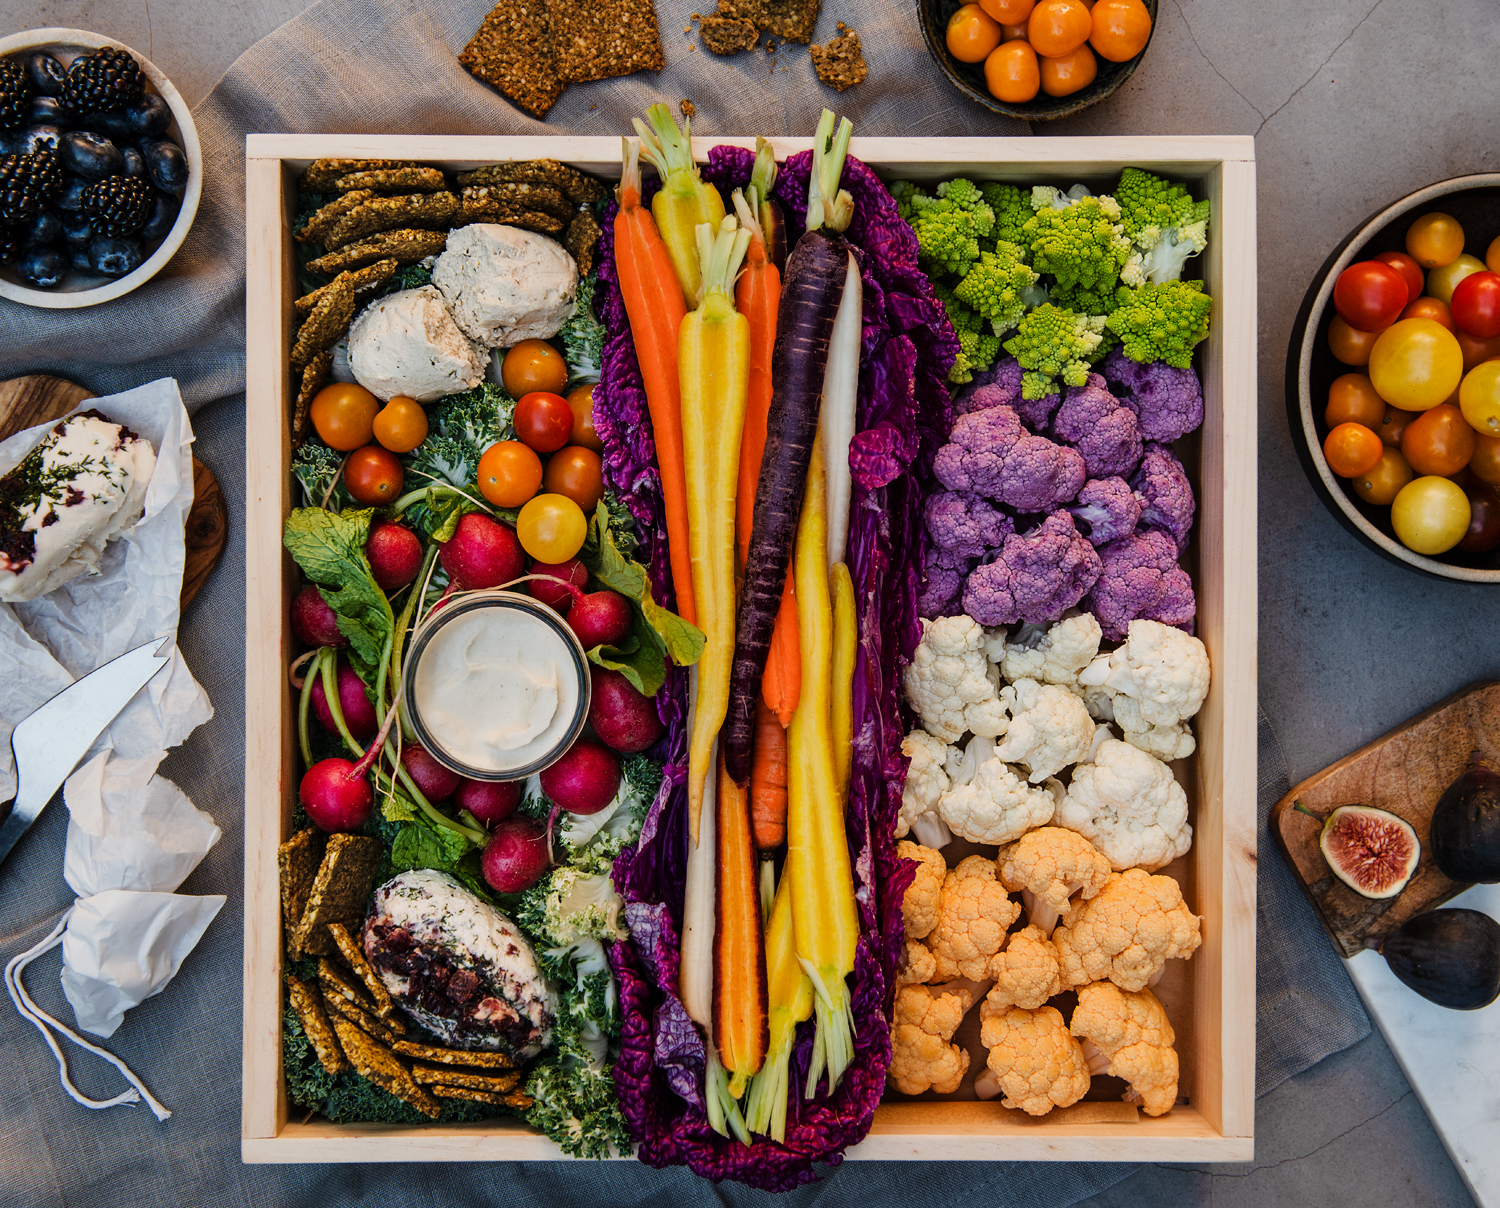 Vegan Crudités Board shot by Michael Marquand for Modern Charcuterie.